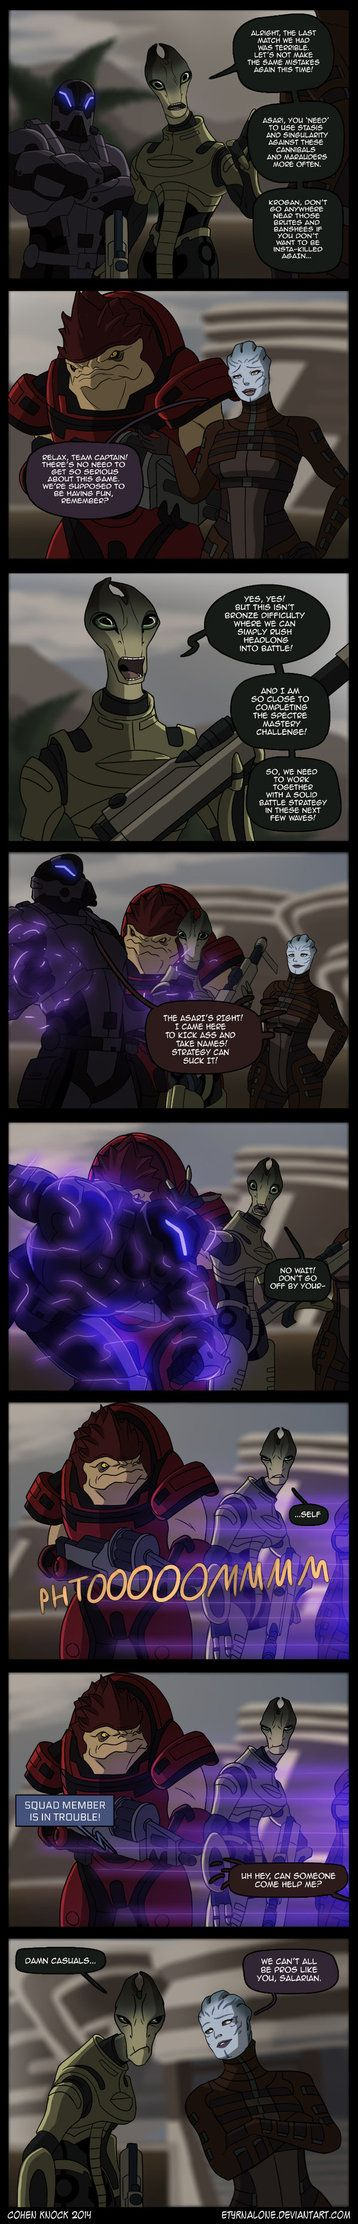 And that's why from this day forth, no one will play ME Multiplayer with me while I'm a Vorcha Sentinel! Xp Mass Effect is © Bioware & EA